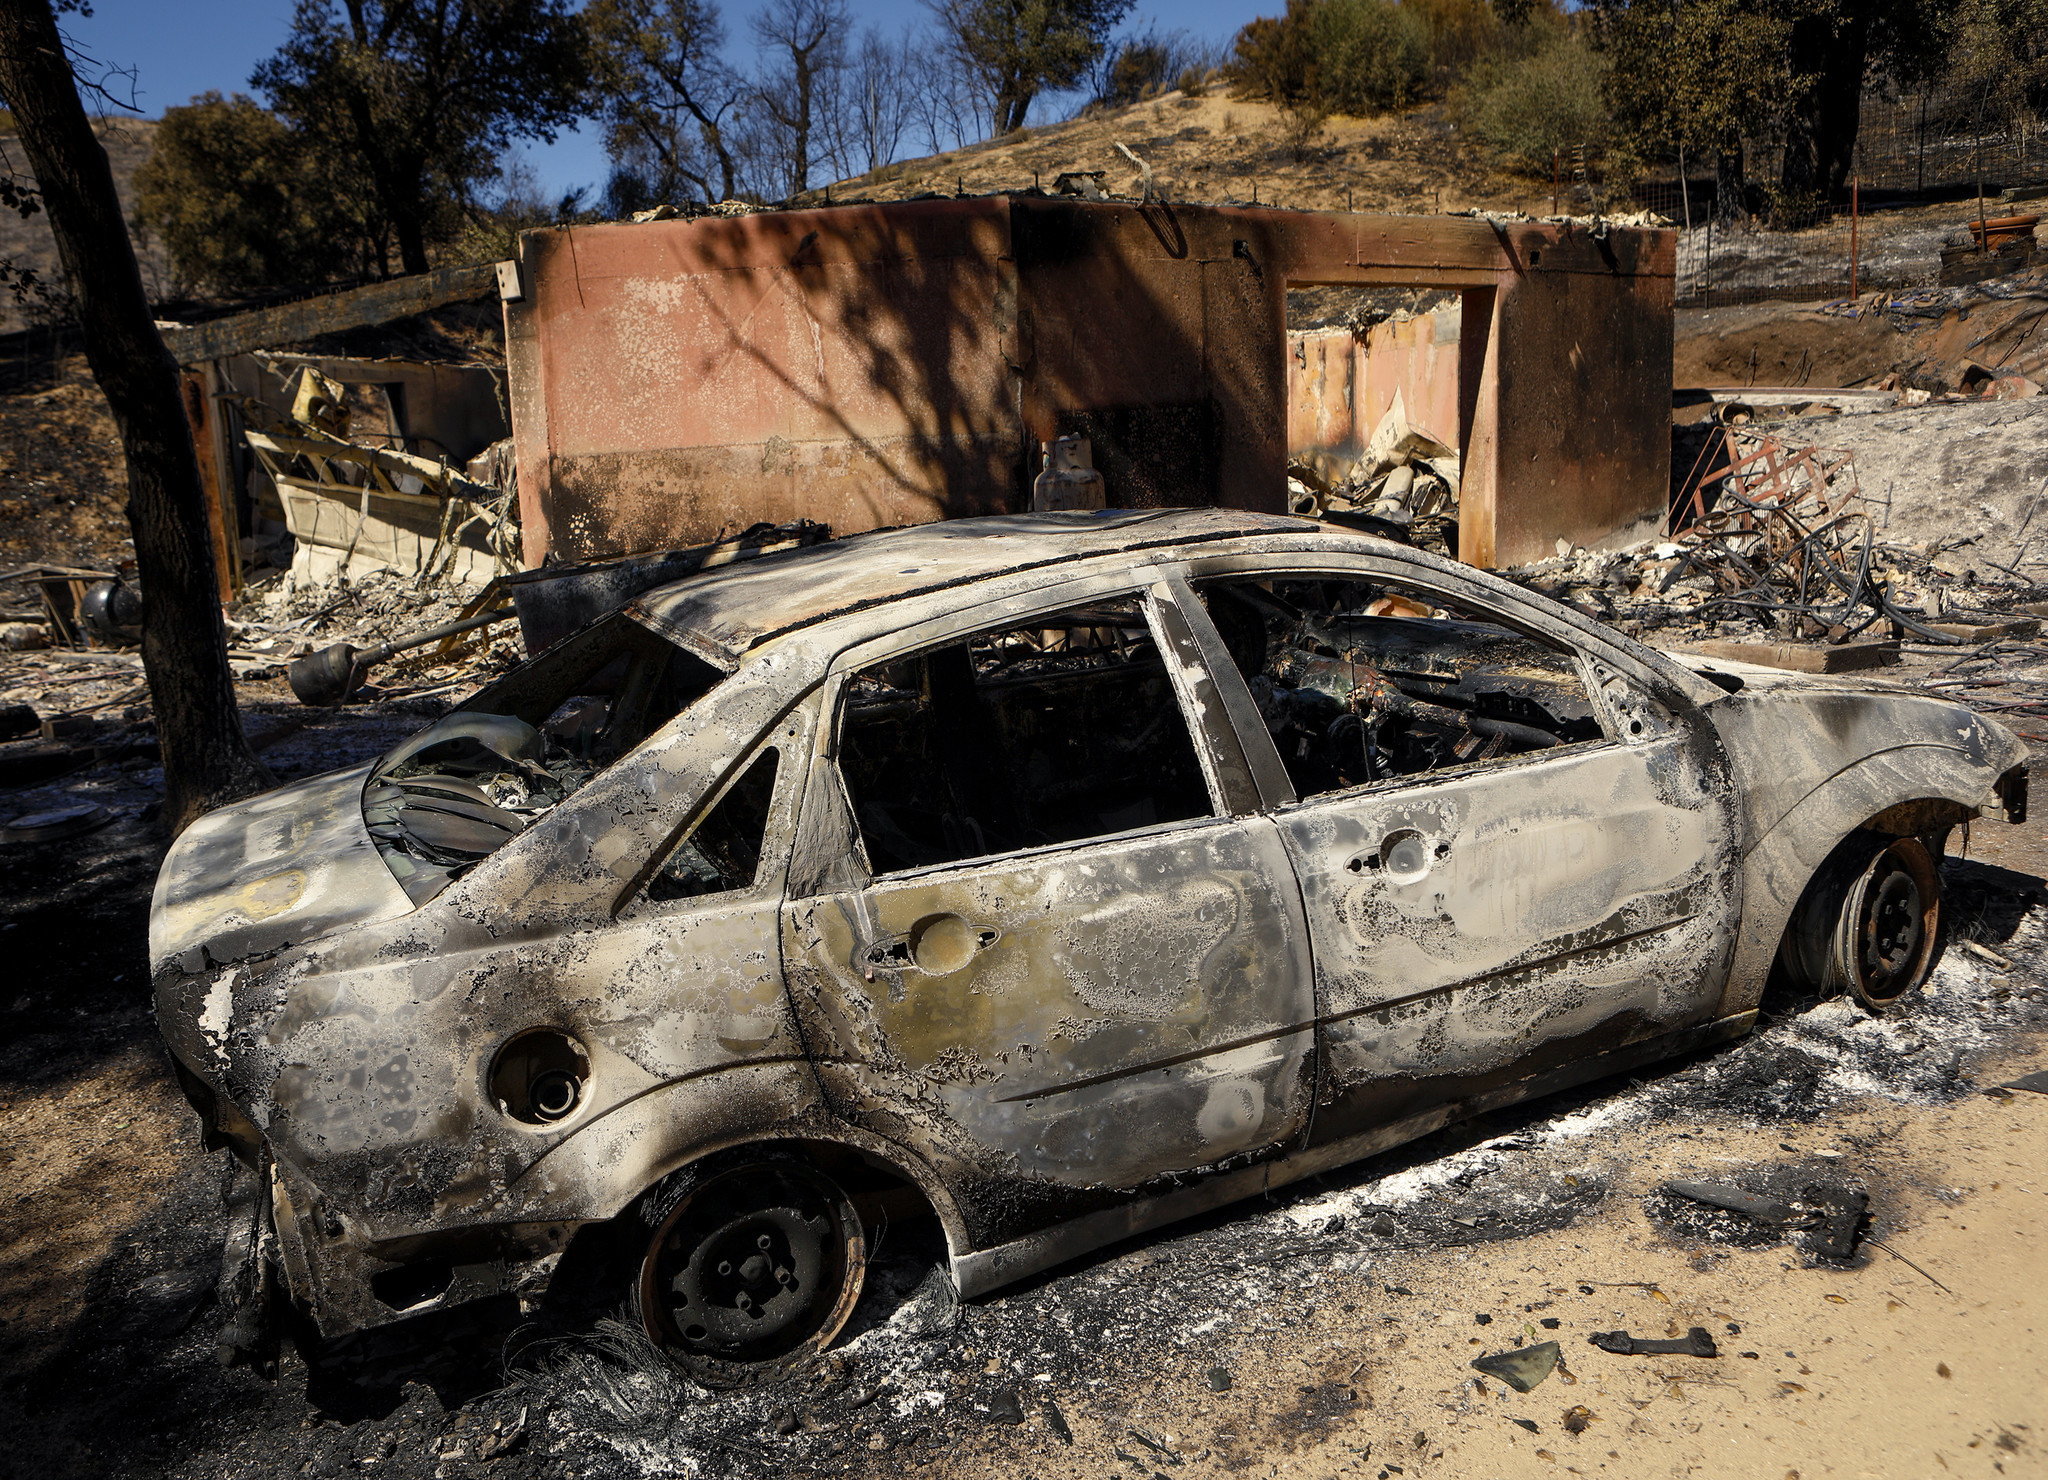 A burned-out car sits next to a destroyed home after a wildfire in Santa Margarita on Wednesday, June 28, 2017.